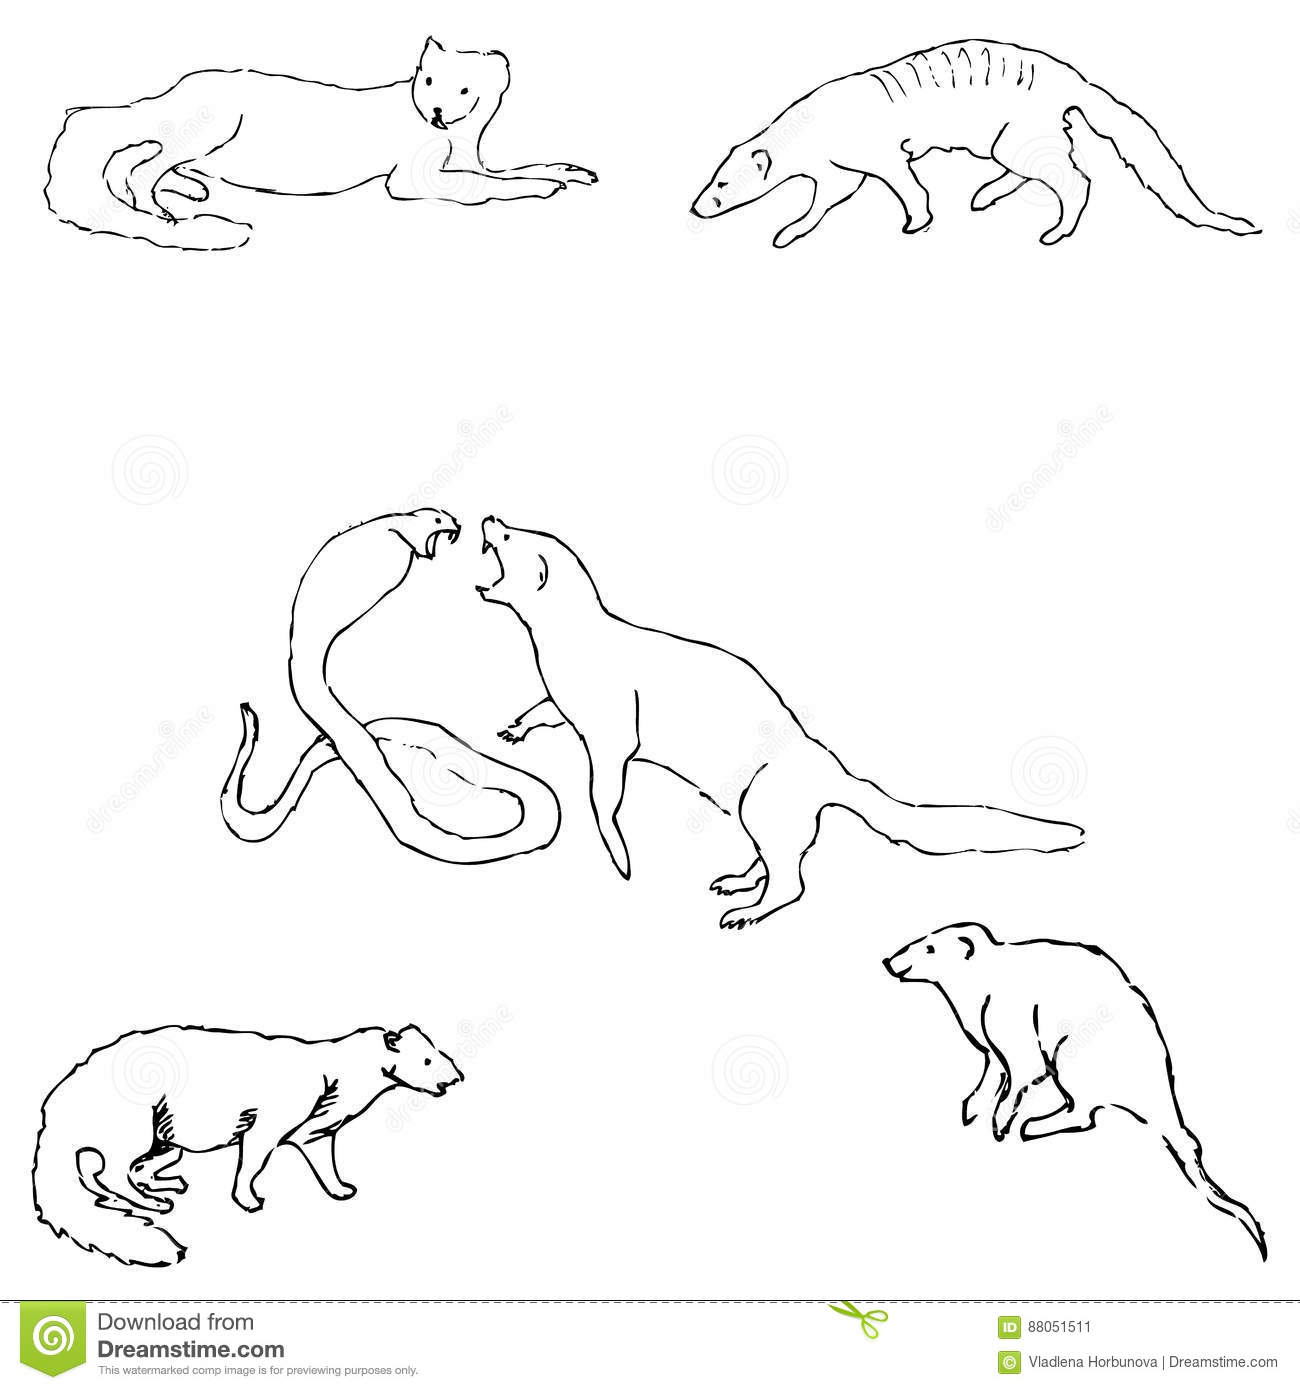 Mongoose sketch by hand pencil drawing by hand vector for Mongoose coloring page